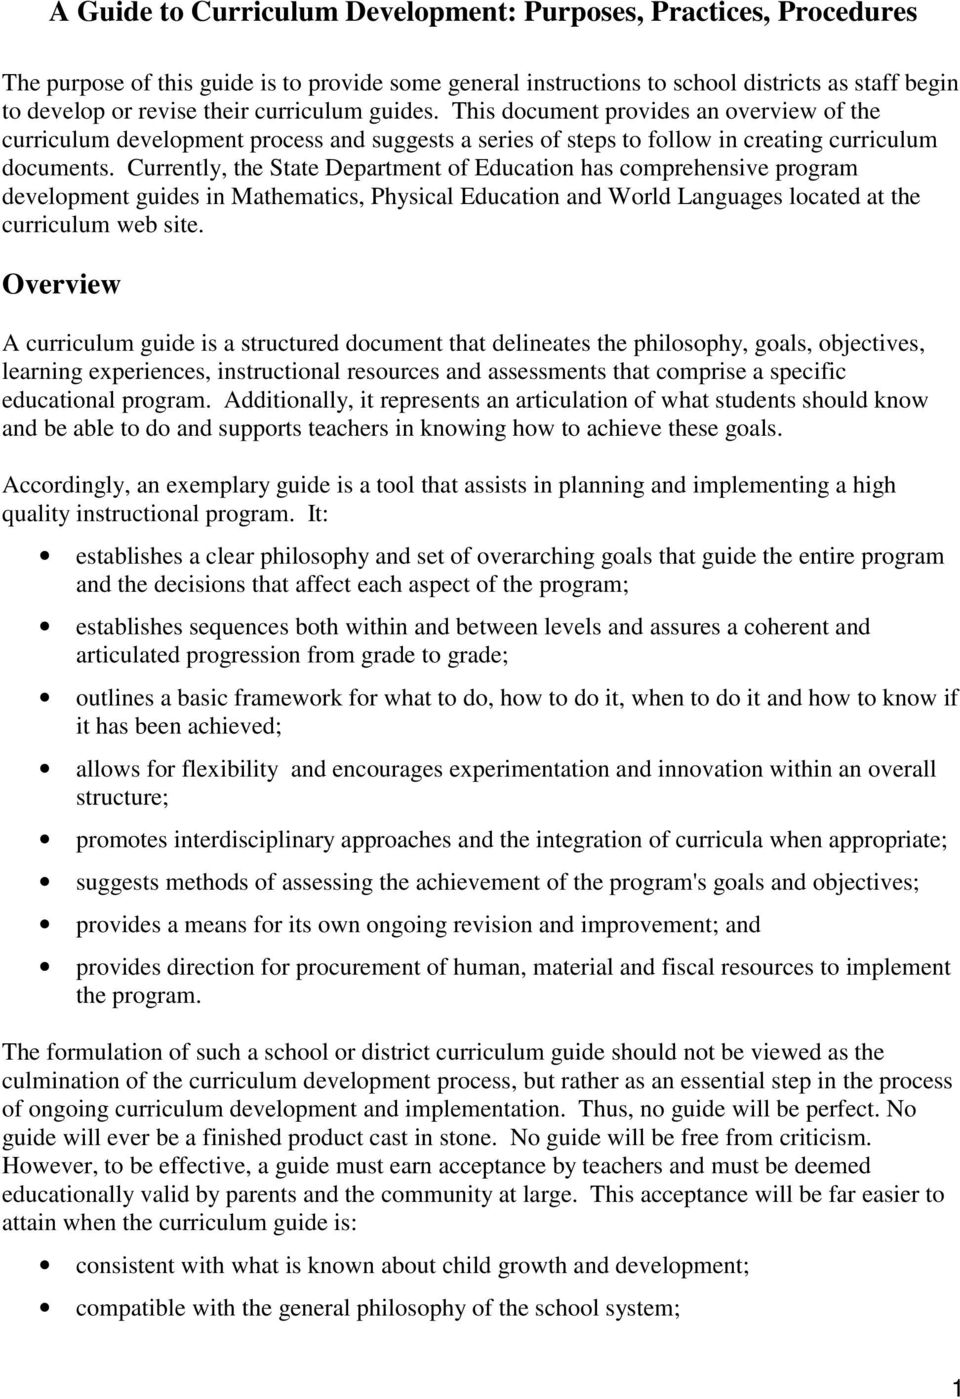 Currently, the State Department of Education has comprehensive program development guides in Mathematics, Physical Education and World Languages located at the curriculum web site.